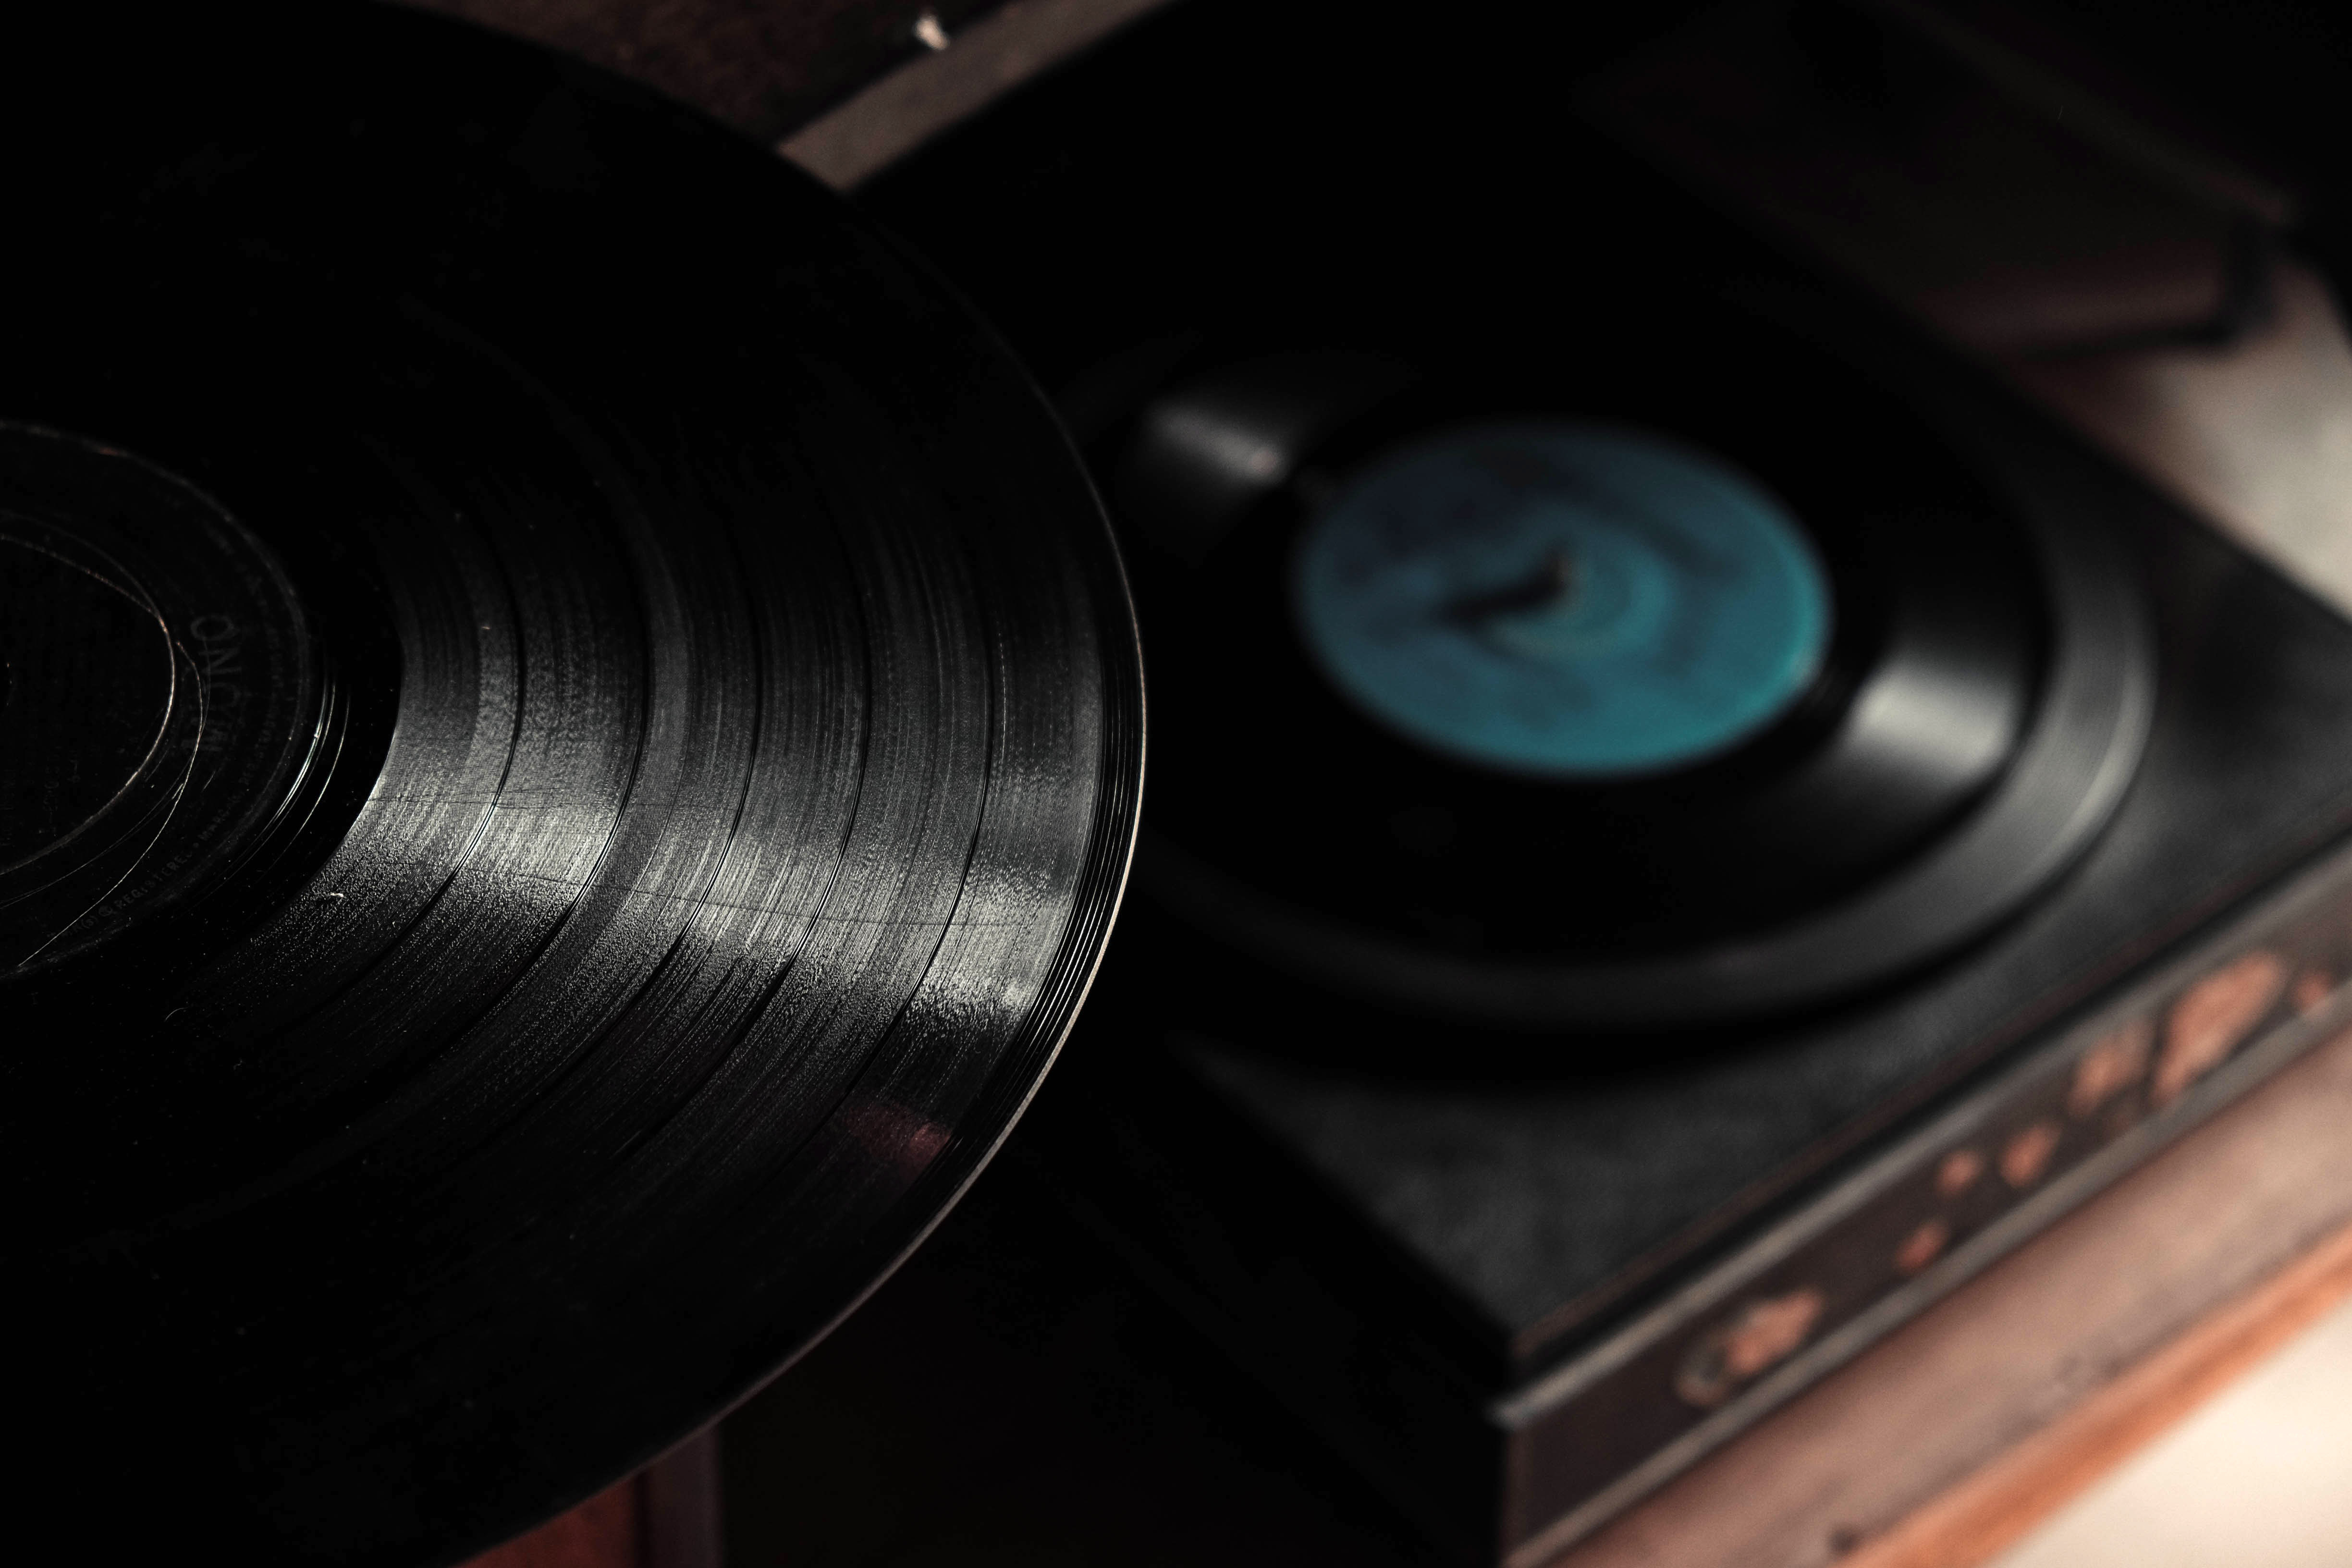 Record Players and disks image - Free stock photo - Public